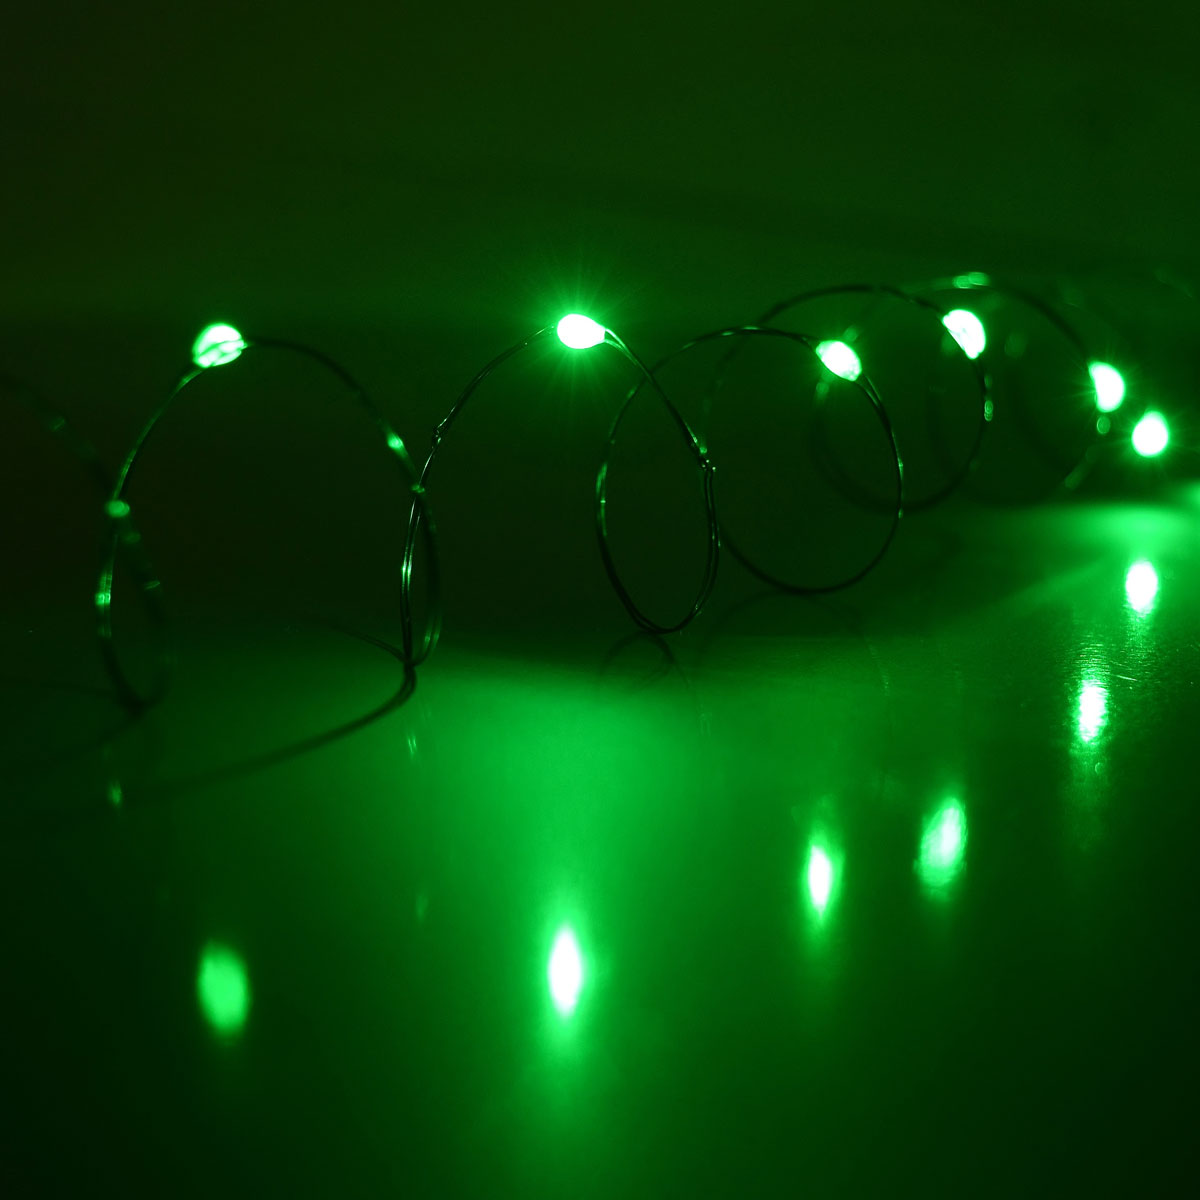 Thin Led String Lights : light strand - 28 images - 25 c9 stringer light strand green wire, fully submersible battery 20 ...